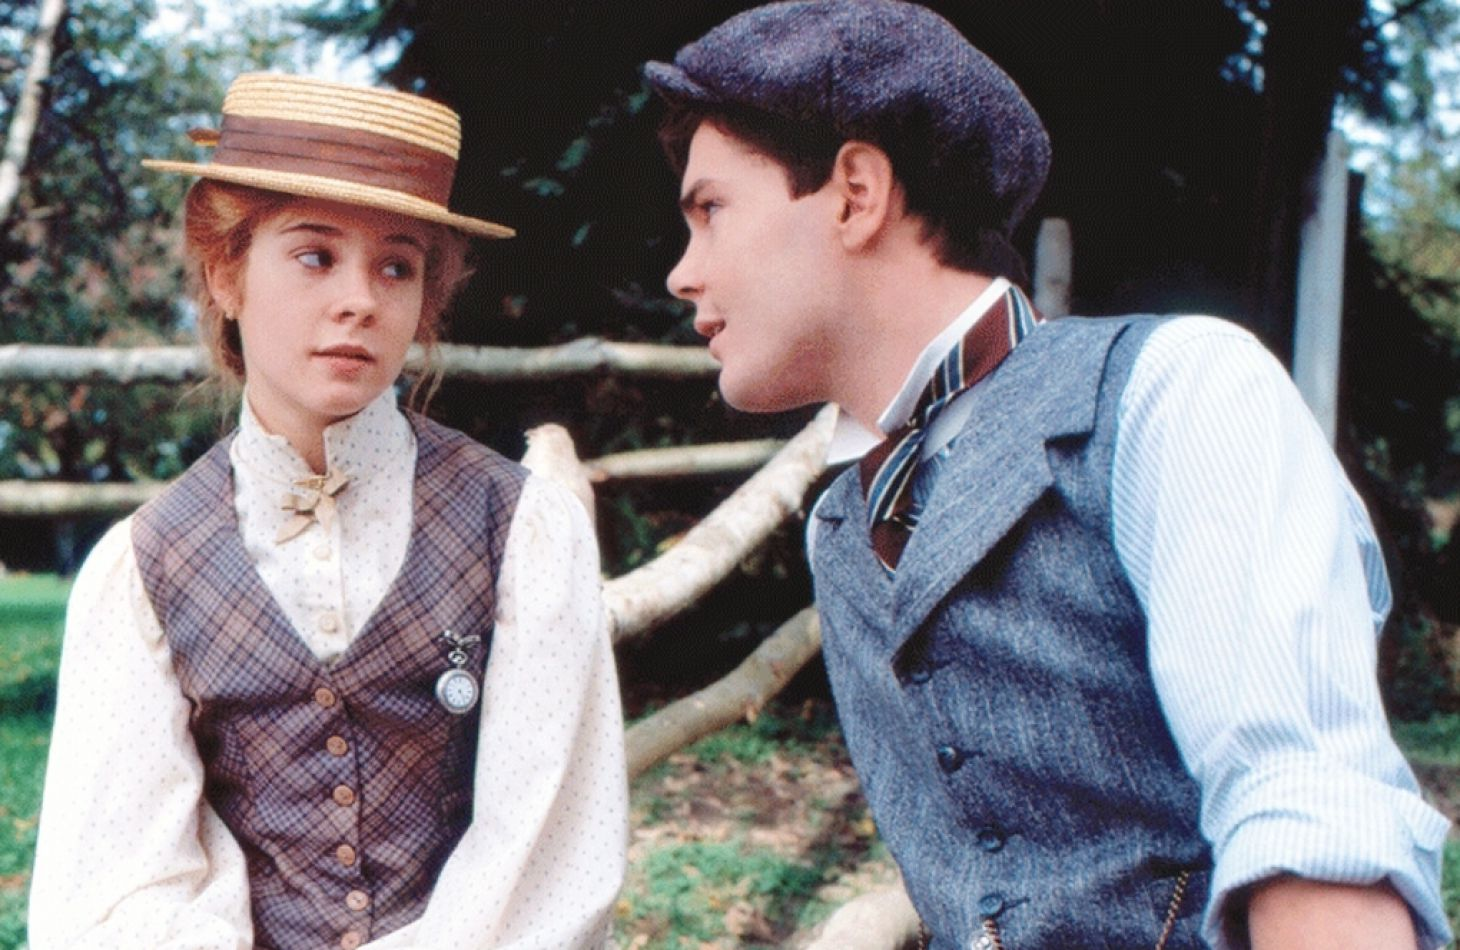 Anne of green gables actor jonathan crombie dies at 48 for Anne la maison aux pignons verts anime